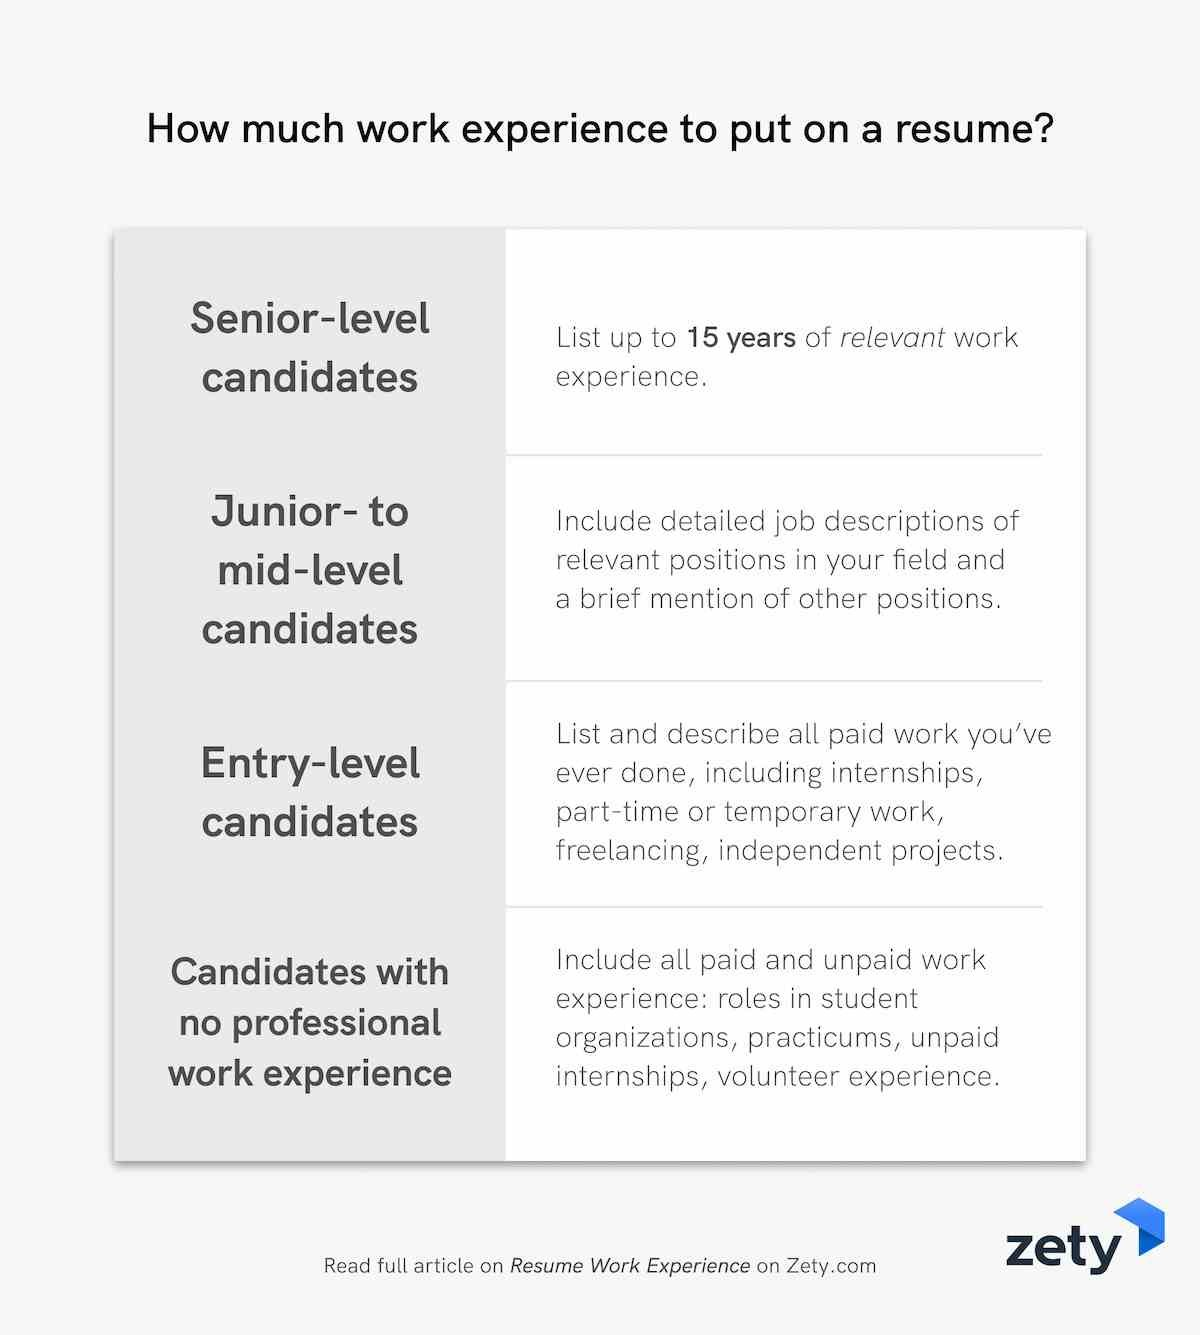 resume work experience history job description examples builder with descriptions much to Resume Resume Builder With Job Descriptions